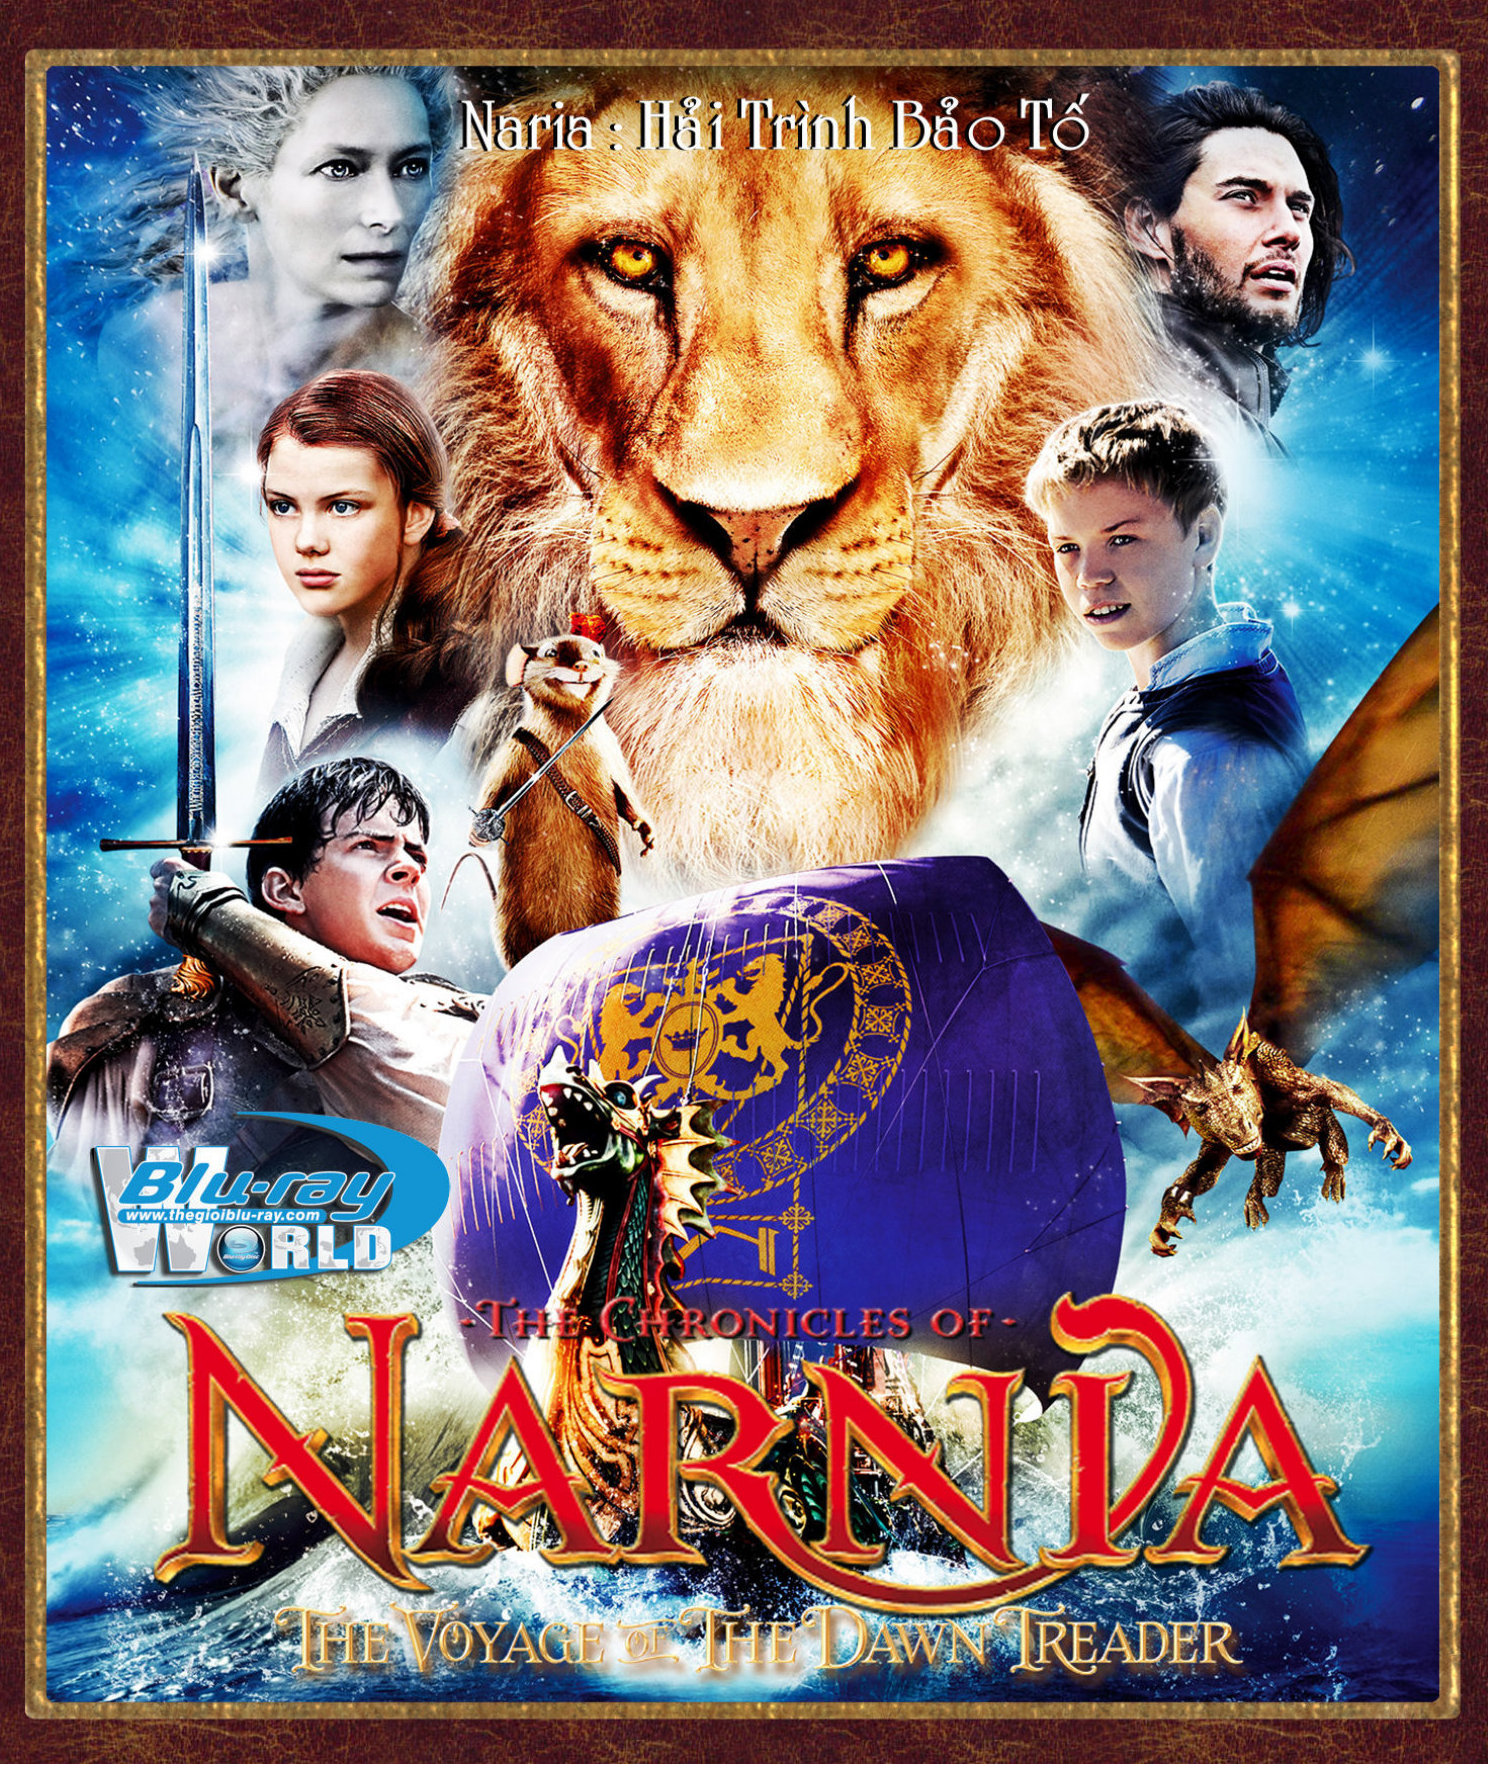 F1104 - The Chronicles of Narnia 3 : The Voyage of the Dawn Treader 2010 - Hành Trình Bảo Tố 2D50G (DTS-HD 5.1)